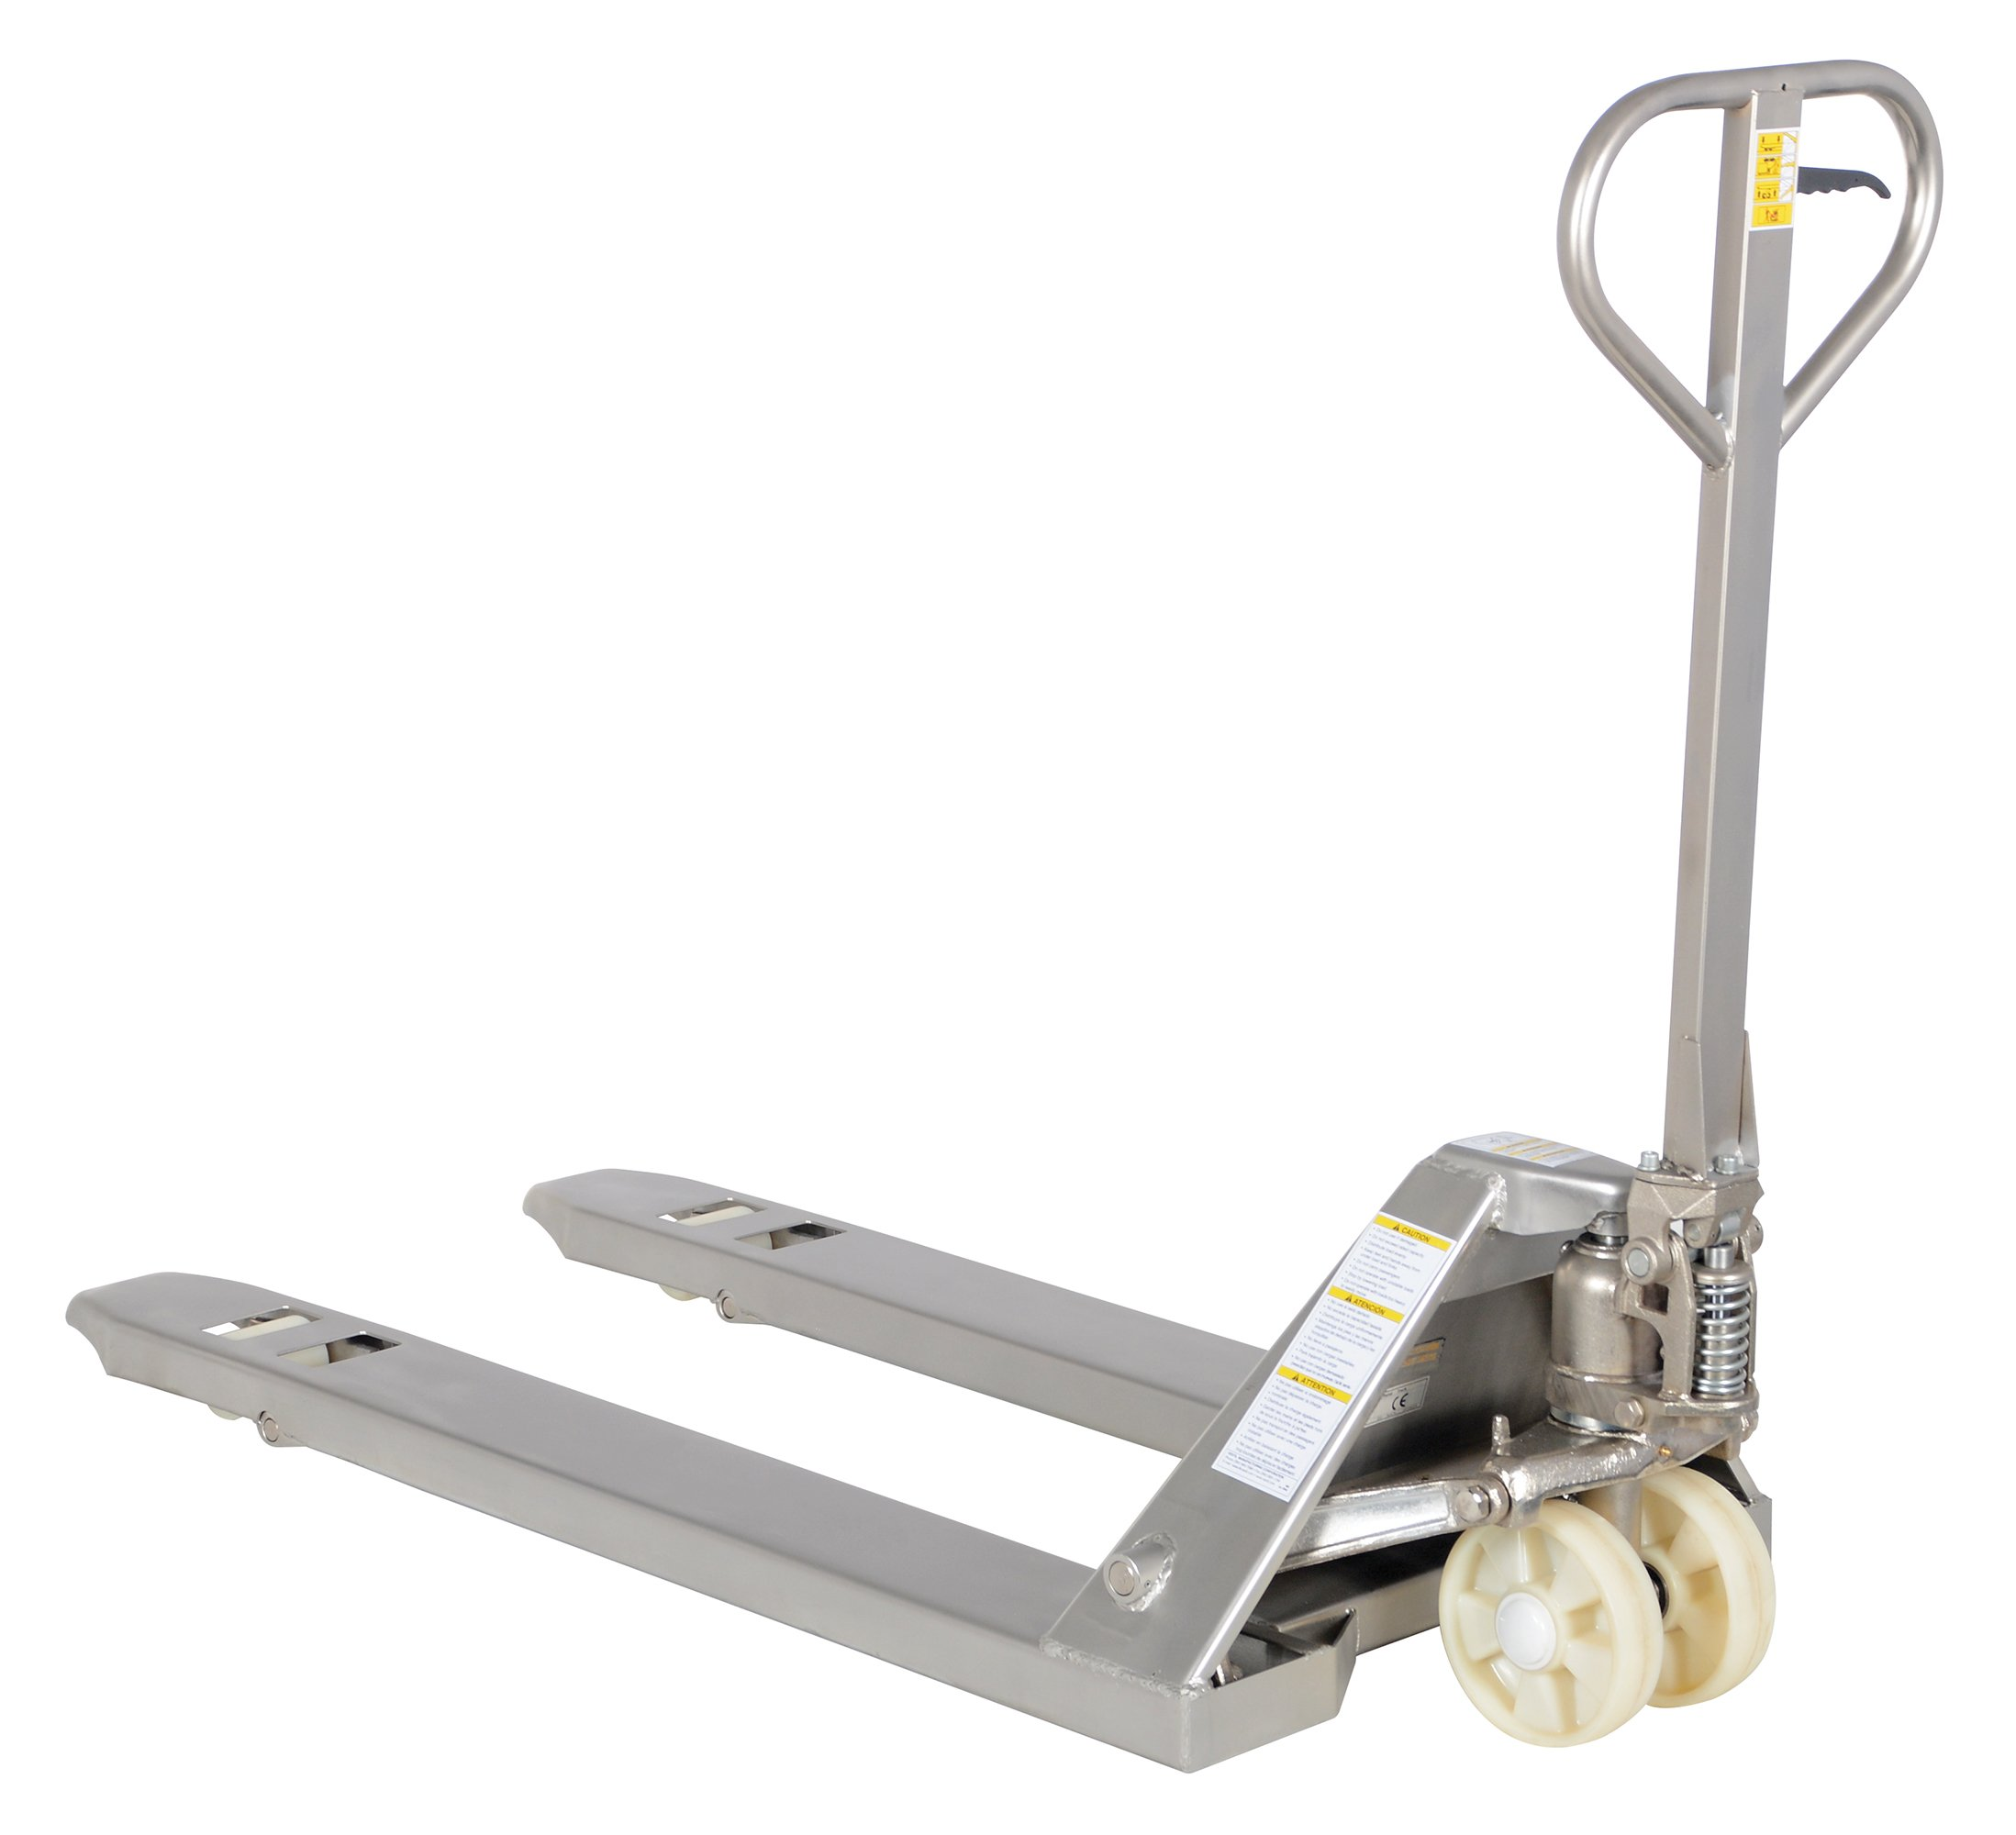 Vestil PM5-2748-SFF 304 Stainless Steel Frame and Forks Pallet Truck with Nylon Wheels, 5500 lbs Capacity, 48'' Length x 27'' Width Fork